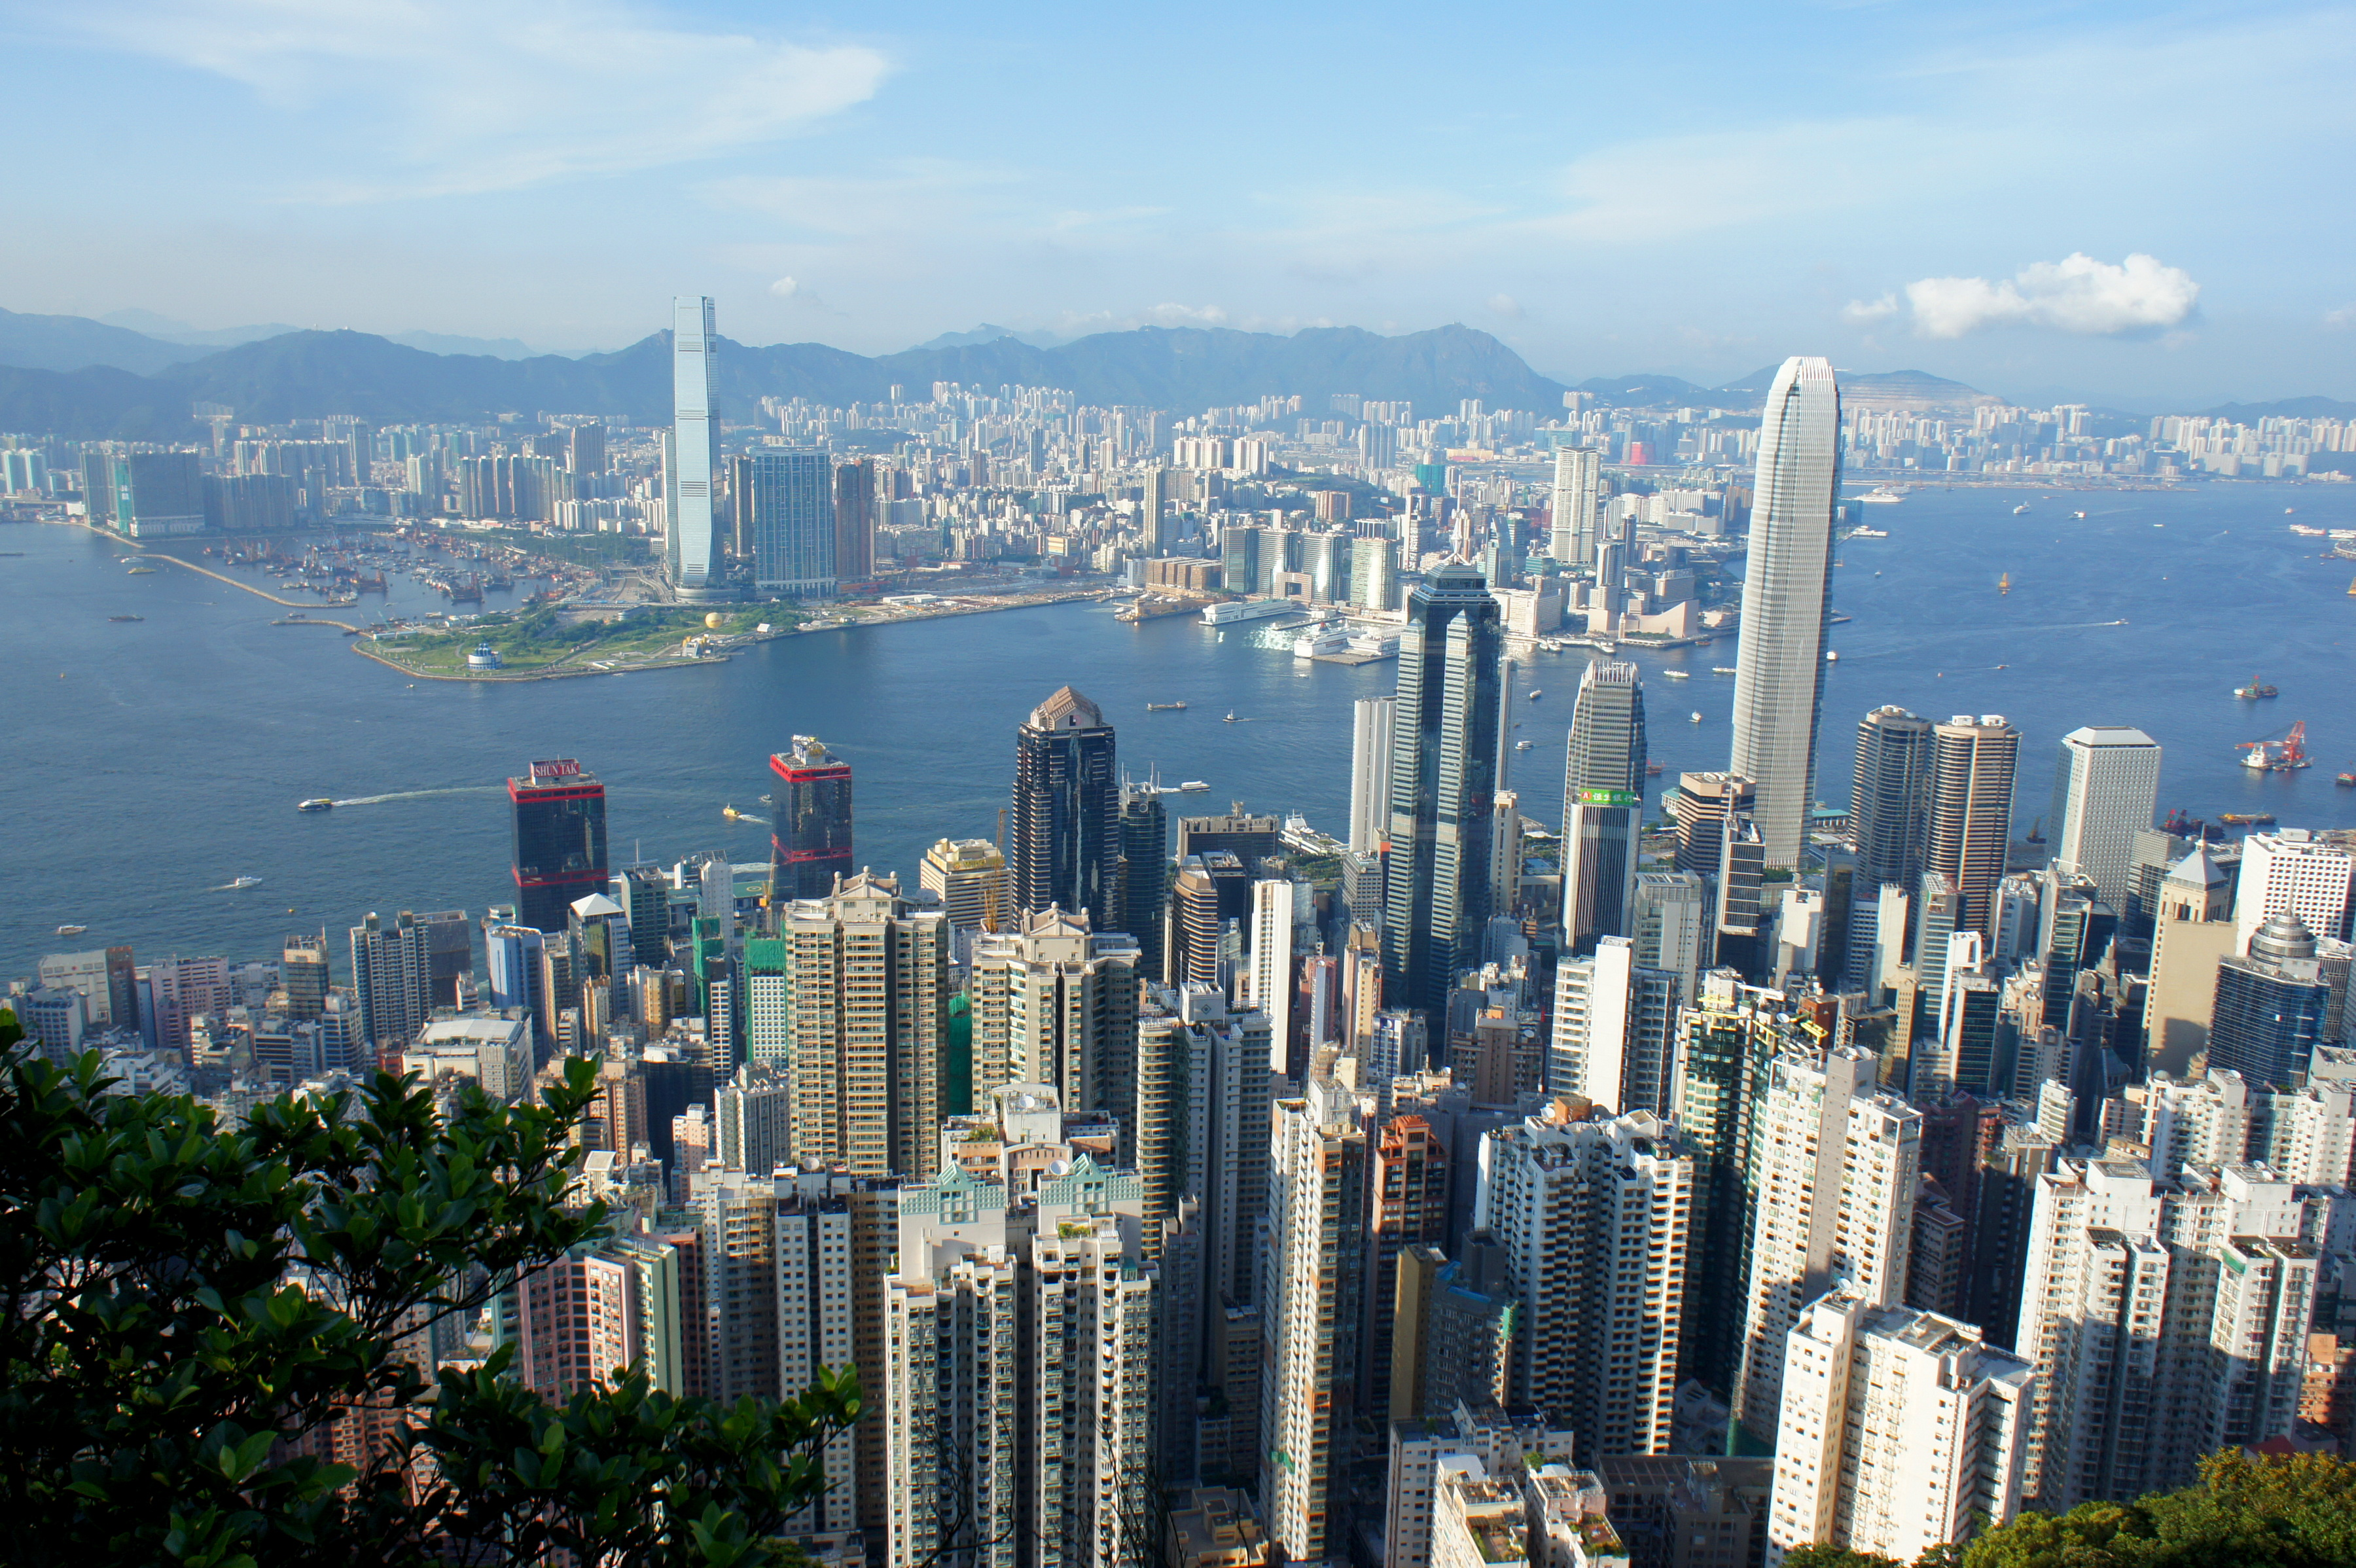 HONG KONG FROM ABOVE  > AN AMAZING & WONDERFUL SPECTACLE